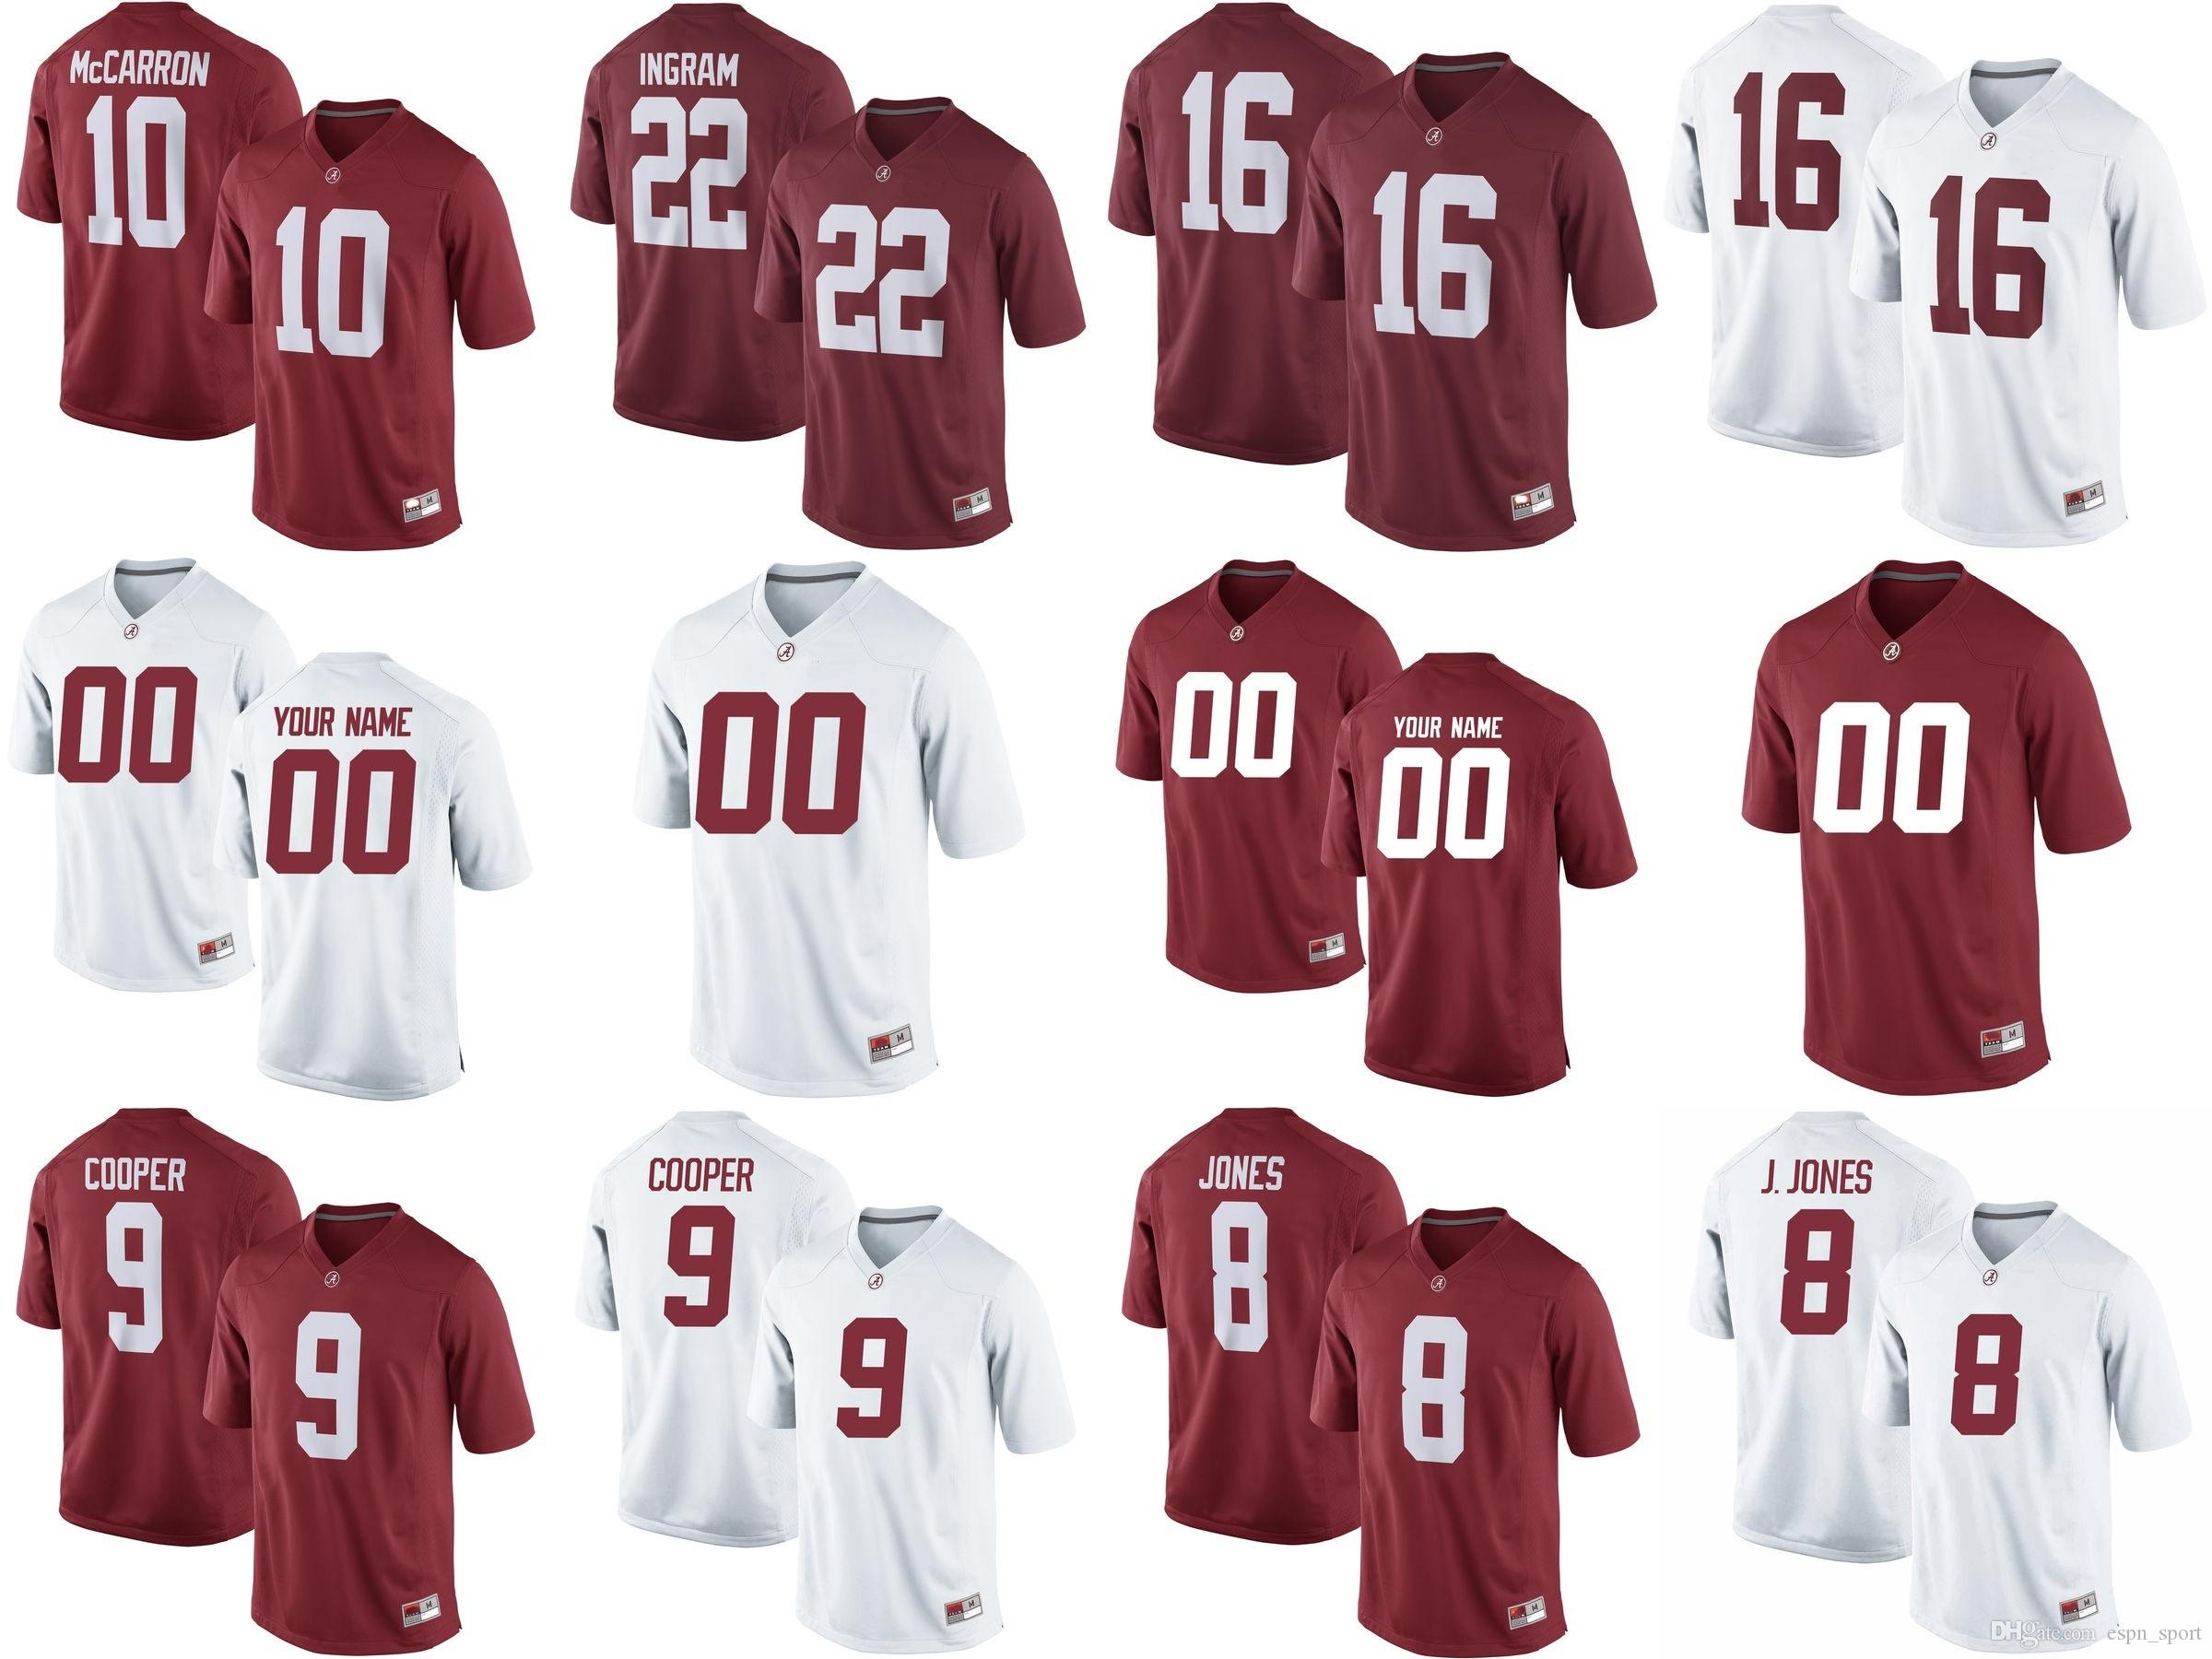 78601a9e0 2019 Mens Womens Kids NCAA Alabama Crimson Tide 8 Julio Jones 9 Amari  Cooper 10 AJ McCarron Custom Any Name No. Football College Jerseys From  Espn sport